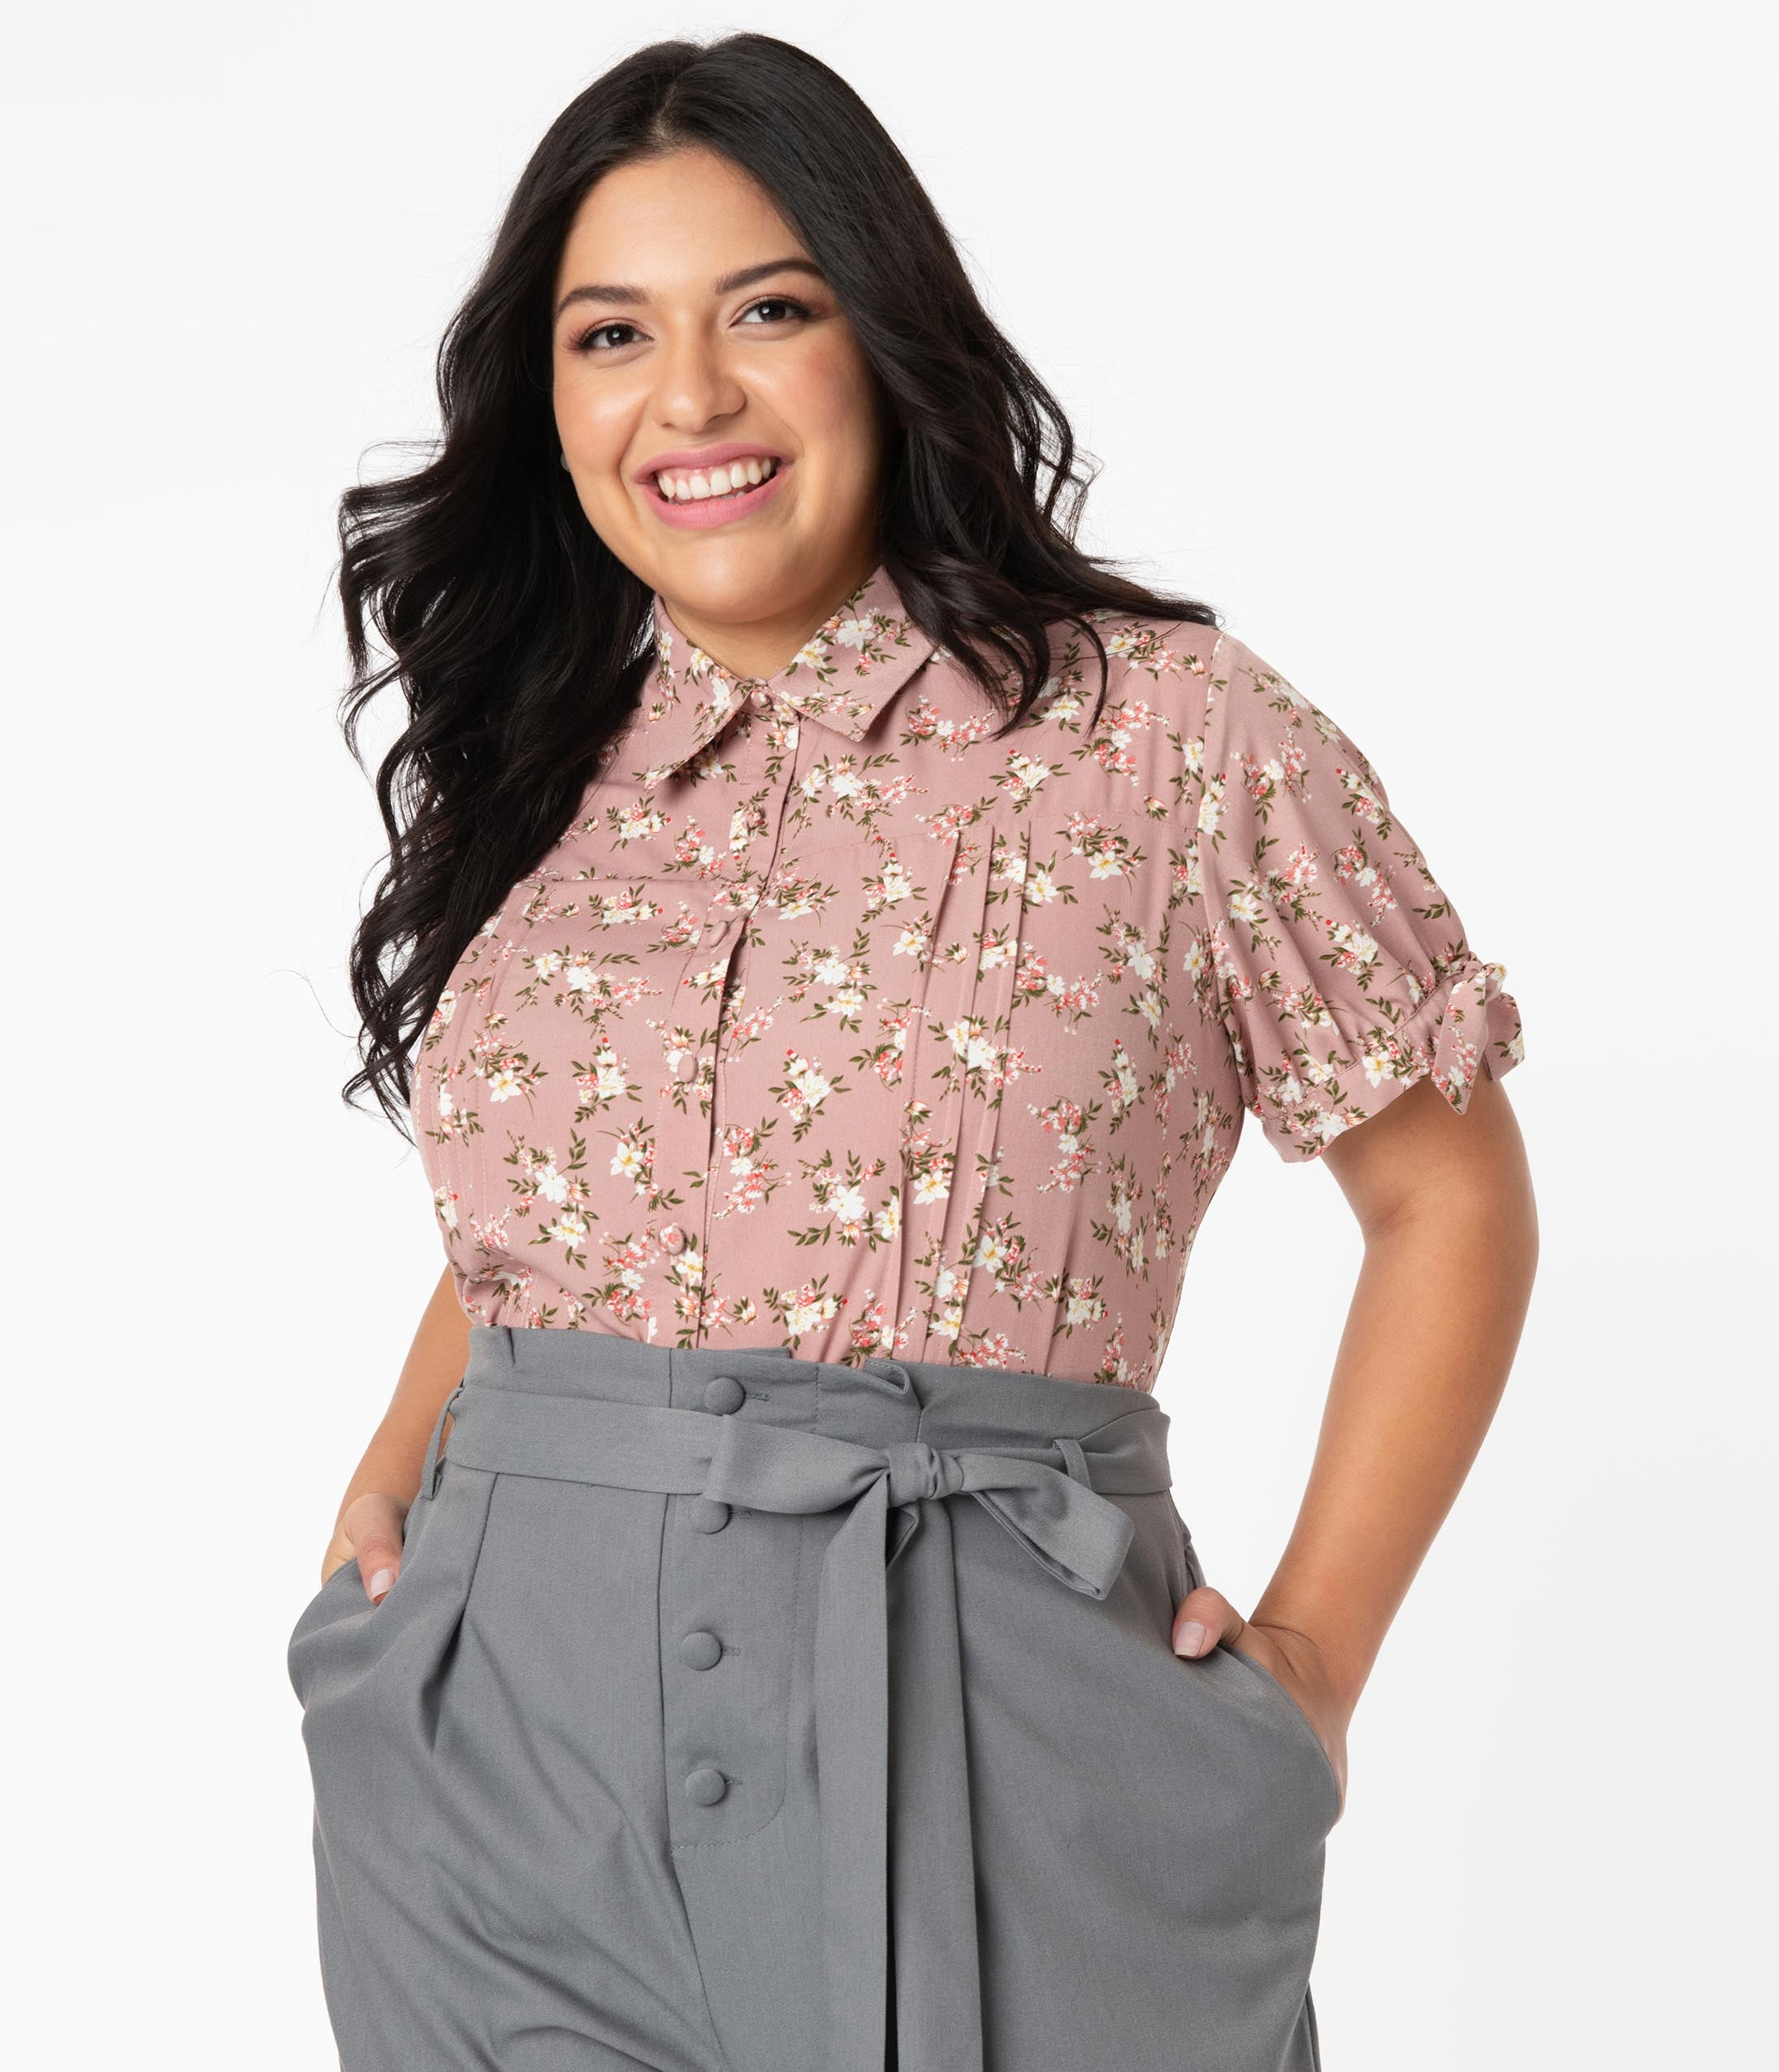 1940s Plus Size Fashion: Style Advice from 1940s to Today Unique Vintage Plus Size Rose Pink Floral Print Colvin Blouse $48.00 AT vintagedancer.com